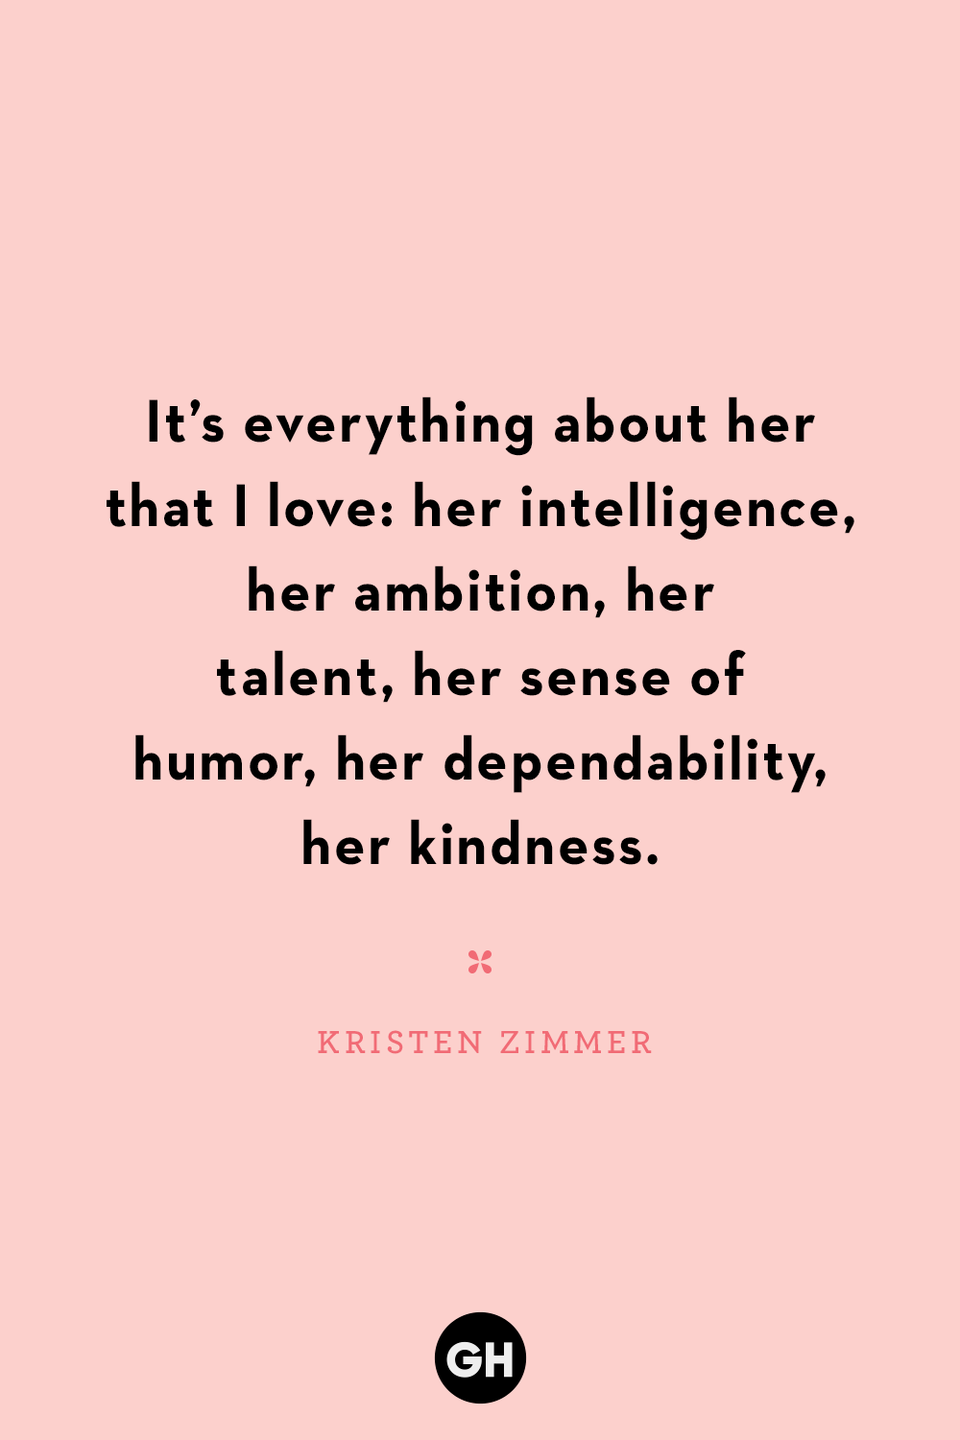 <p>It's everything about her that I love: her intelligence, her ambition, her talent, her sense of humor, her dependability, her kindness.</p>